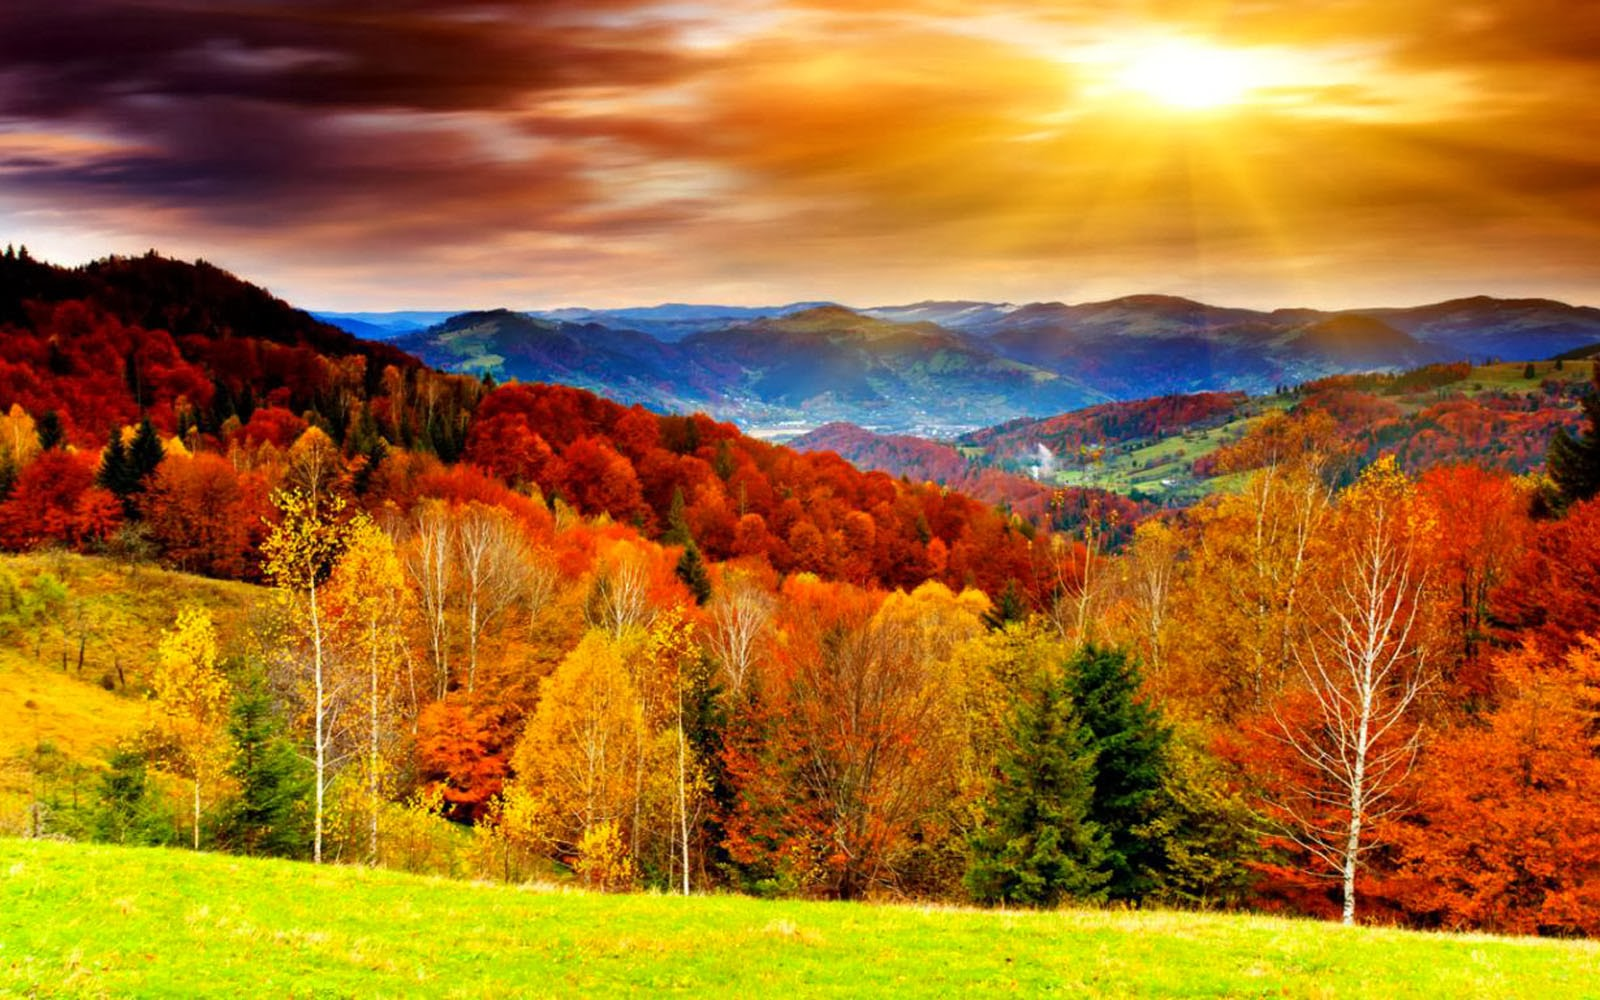 Tag Autumn Scenery Wallpapers Backgrounds Photos Images and 1600x1000